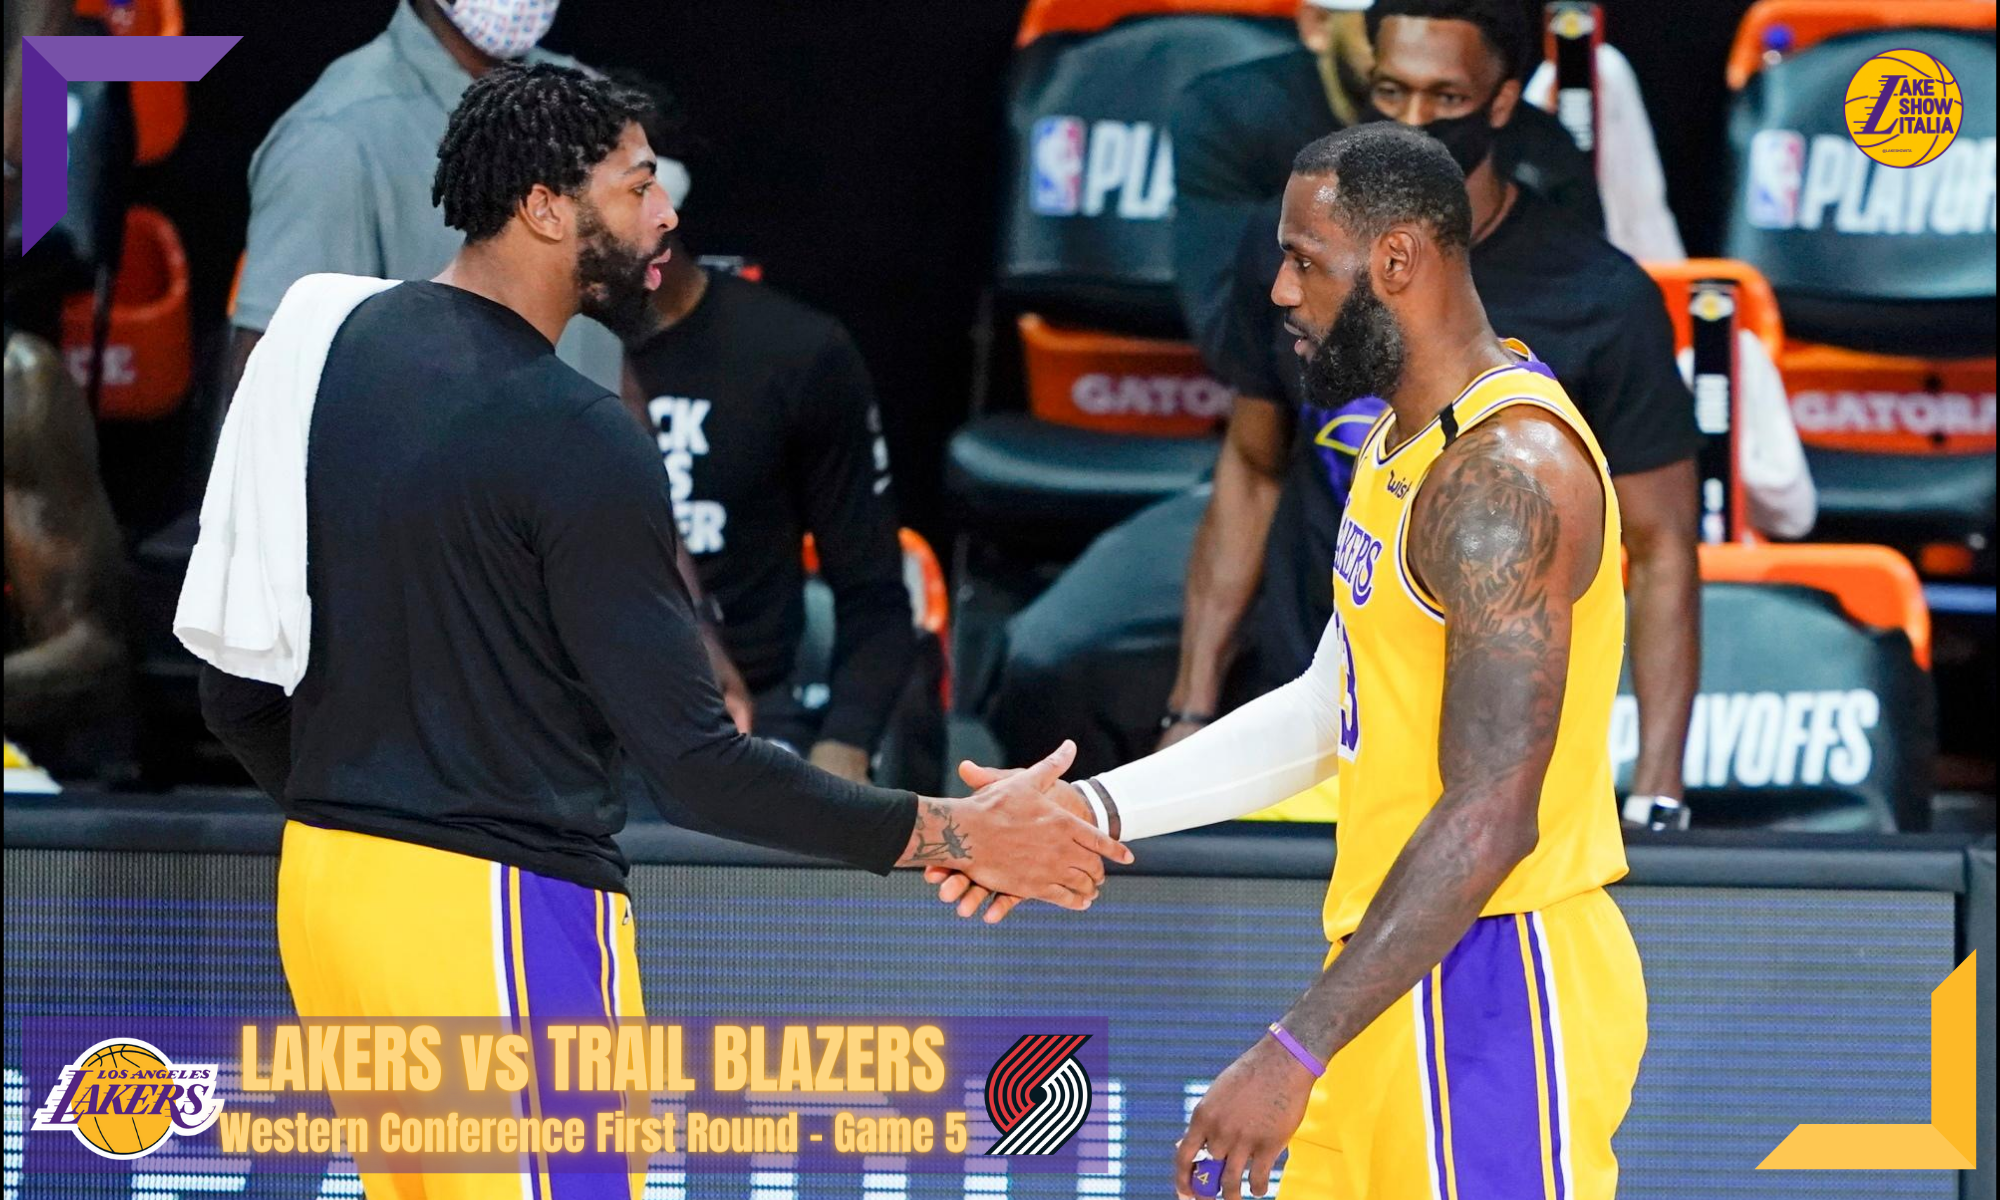 Los Angeles Lakers' Anthony Davis, left, shakes hands with LeBron James as James goes to the bench during the first half of an NBA basketball first round playoff game against the Portland Trail Blazers Saturday, Aug. 29, 2020, in Lake Buena Vista, Fla.